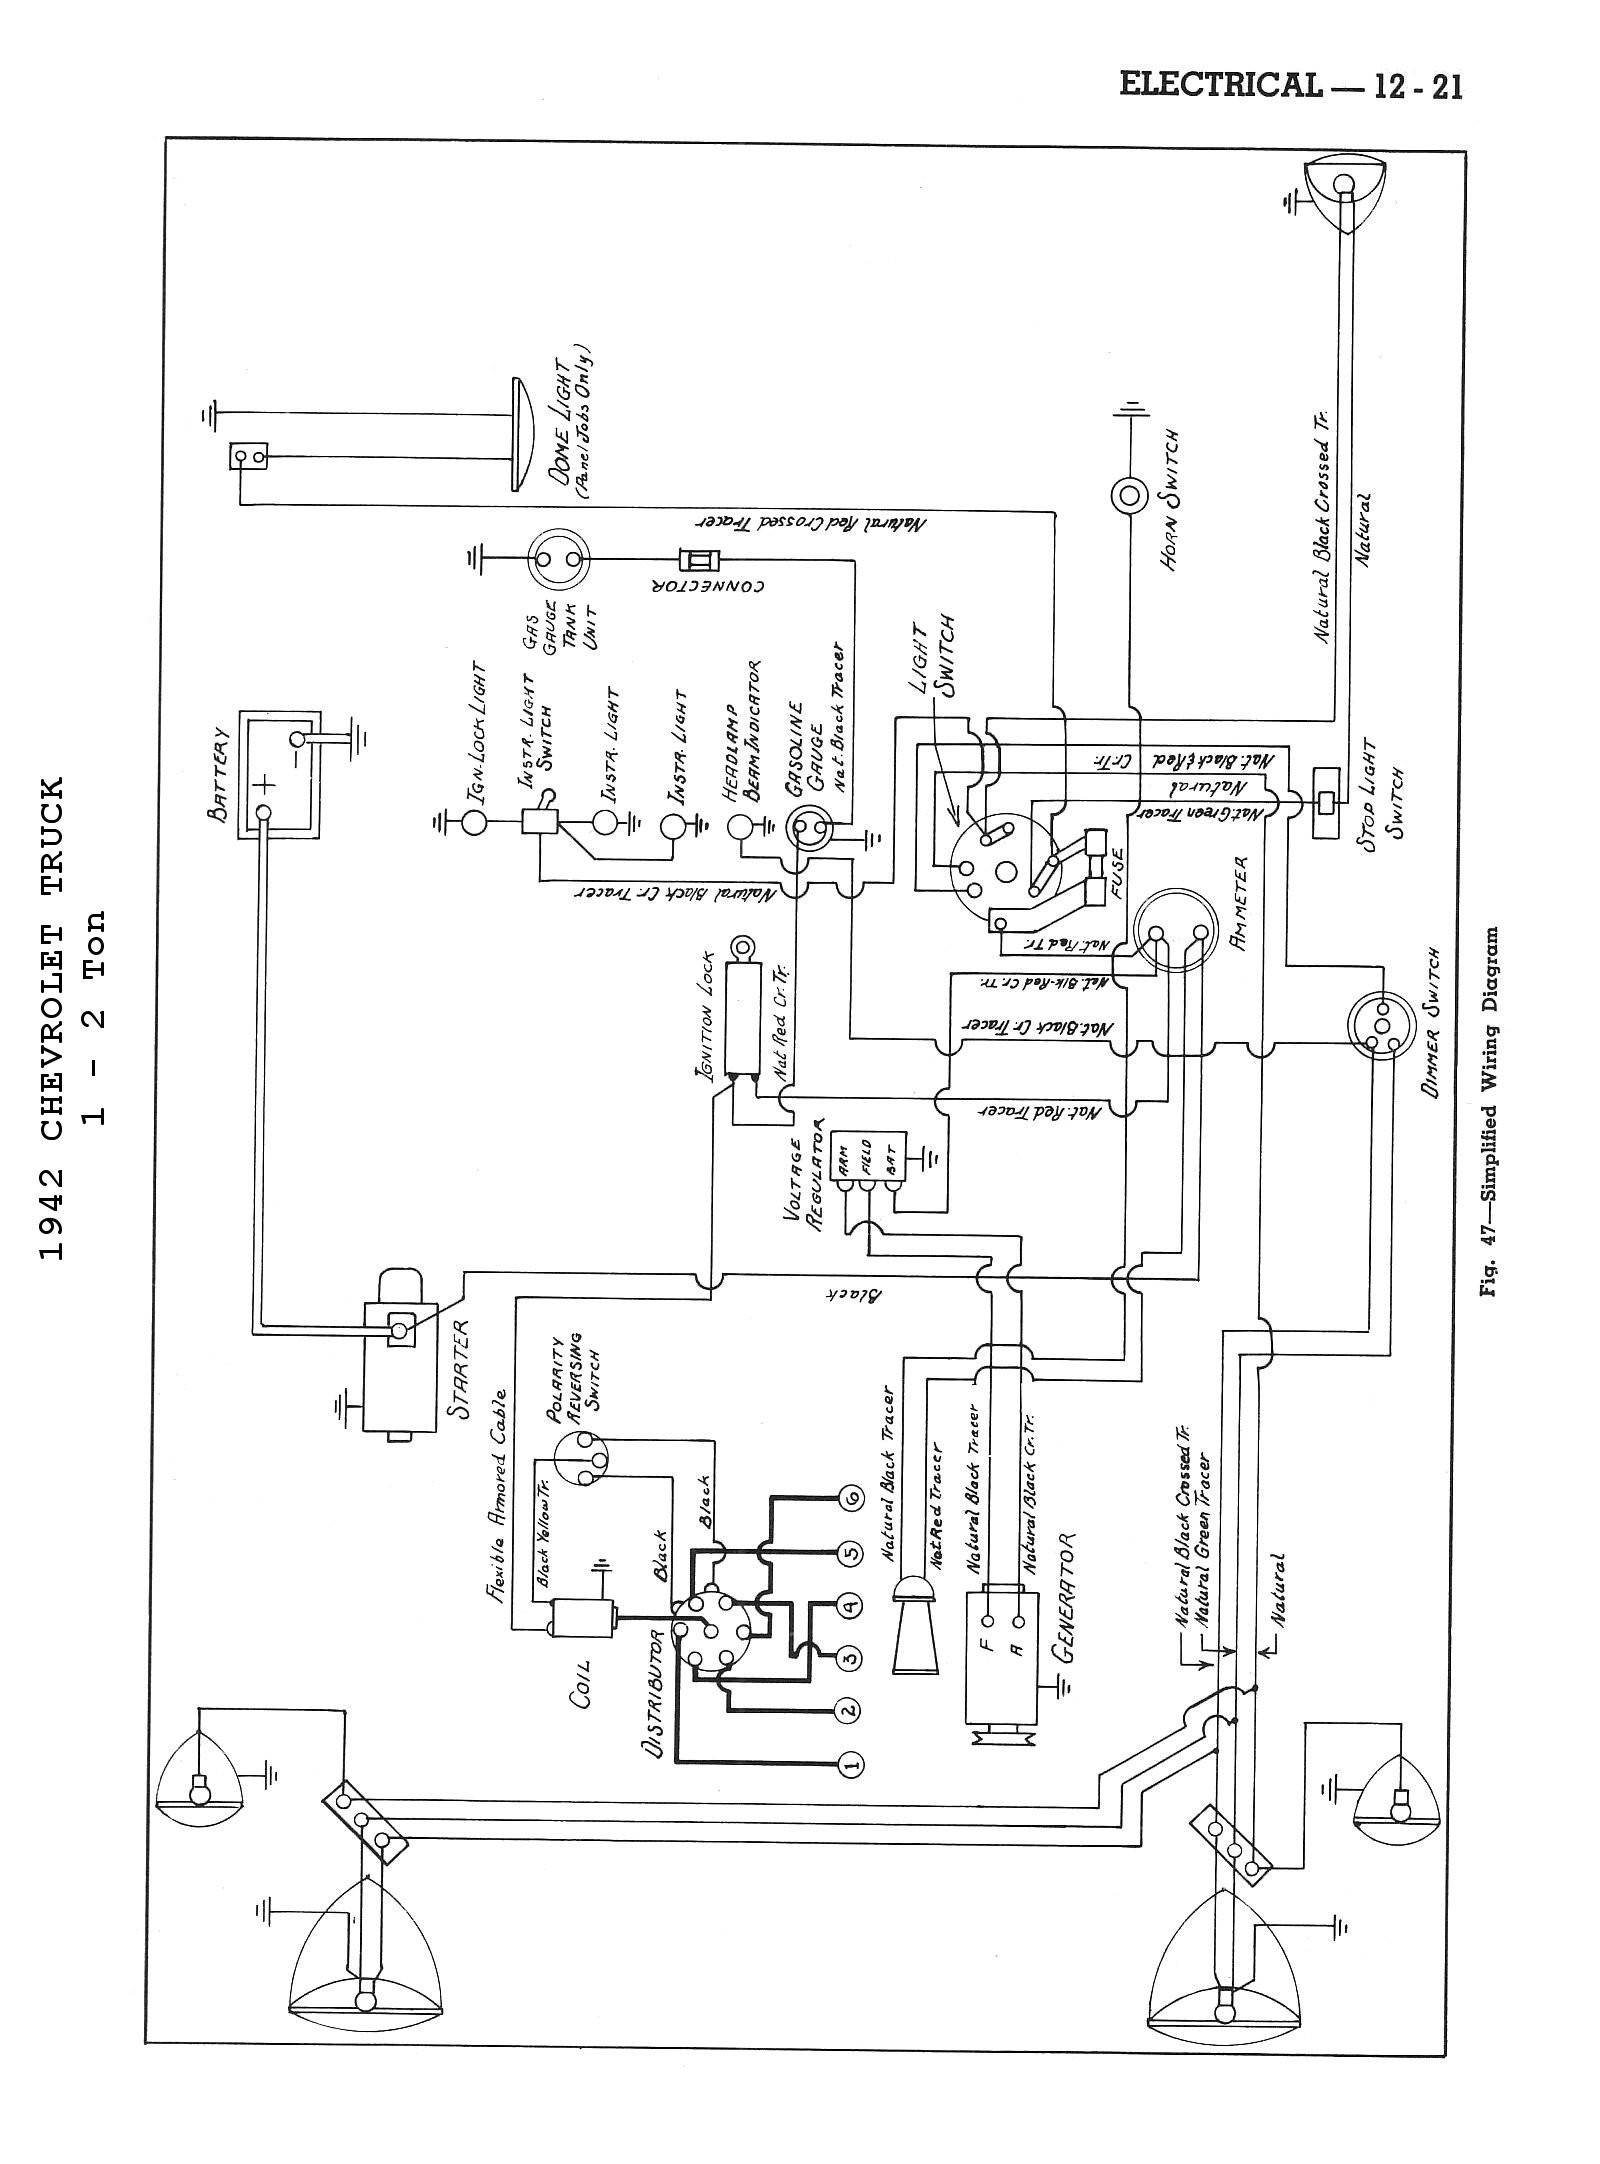 In Car Entertainment Wiring Diagram